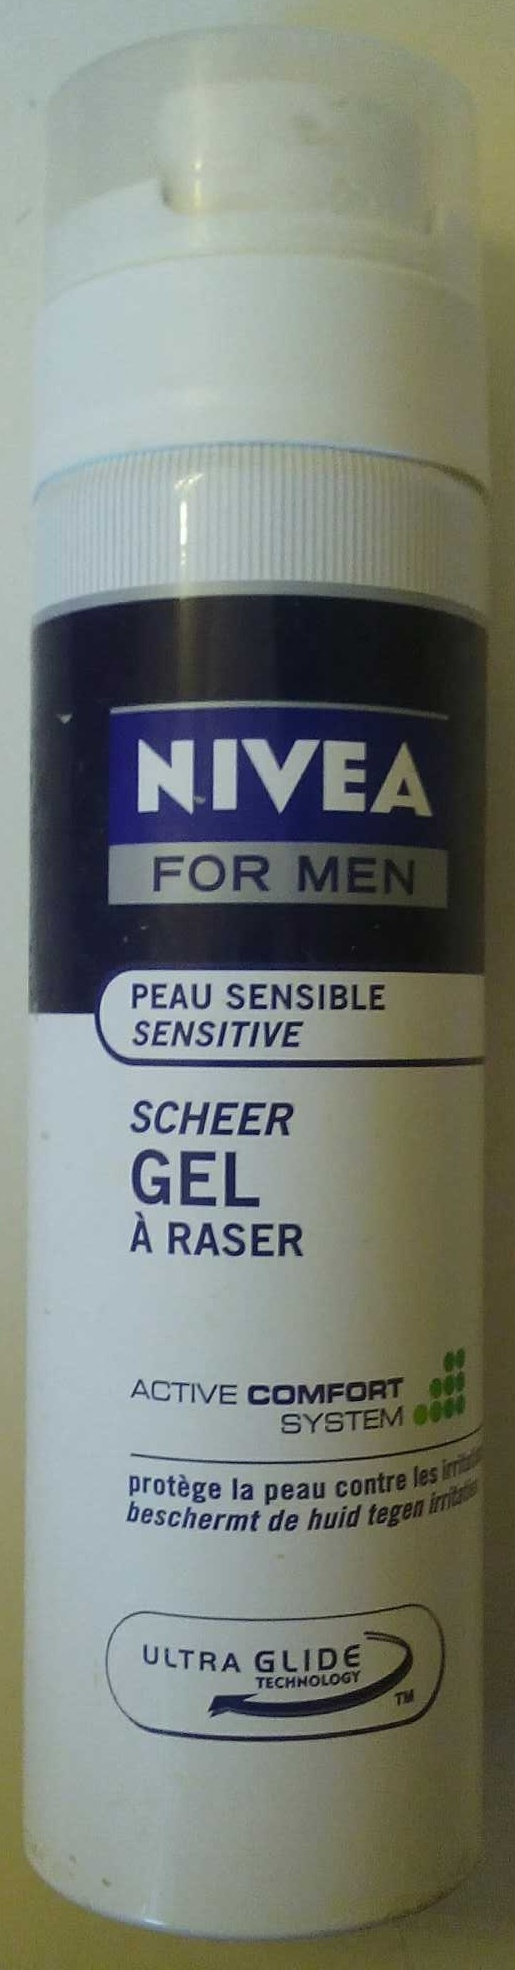 Gel à raser peau sensible - Product - fr